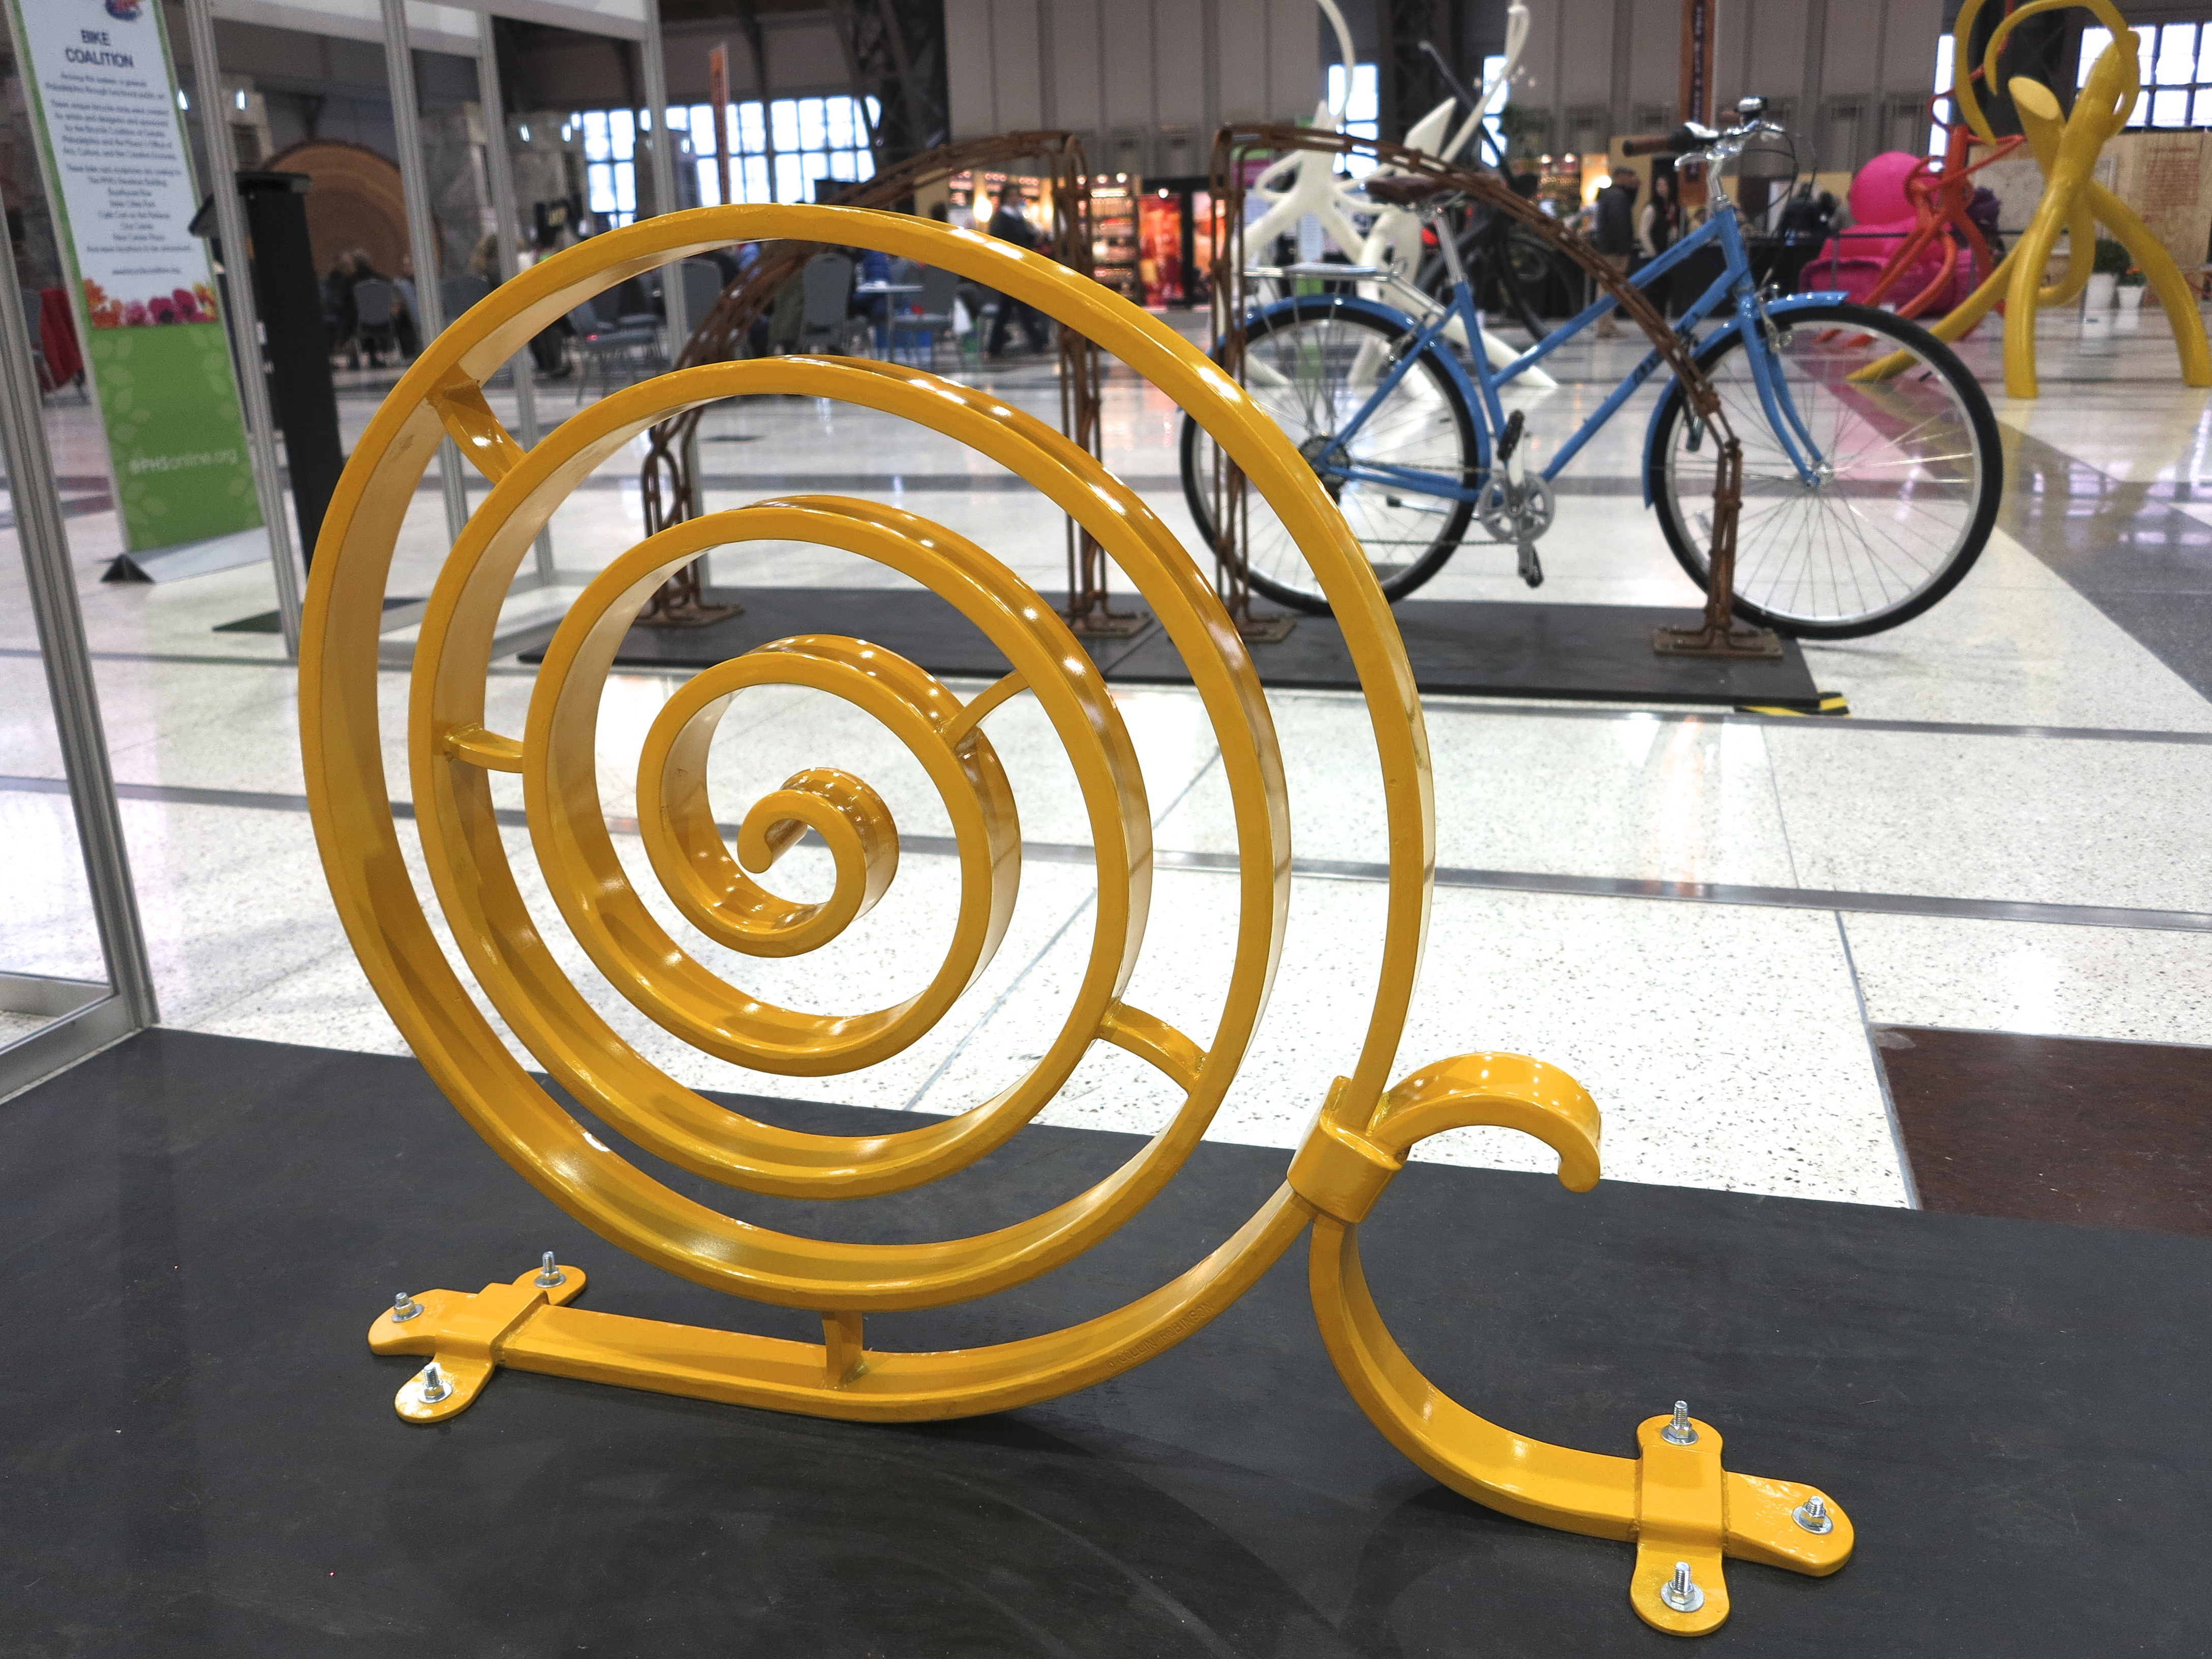 Spiral Bike Rack, by Collin Robinson (location: PMA's Perelman Building)